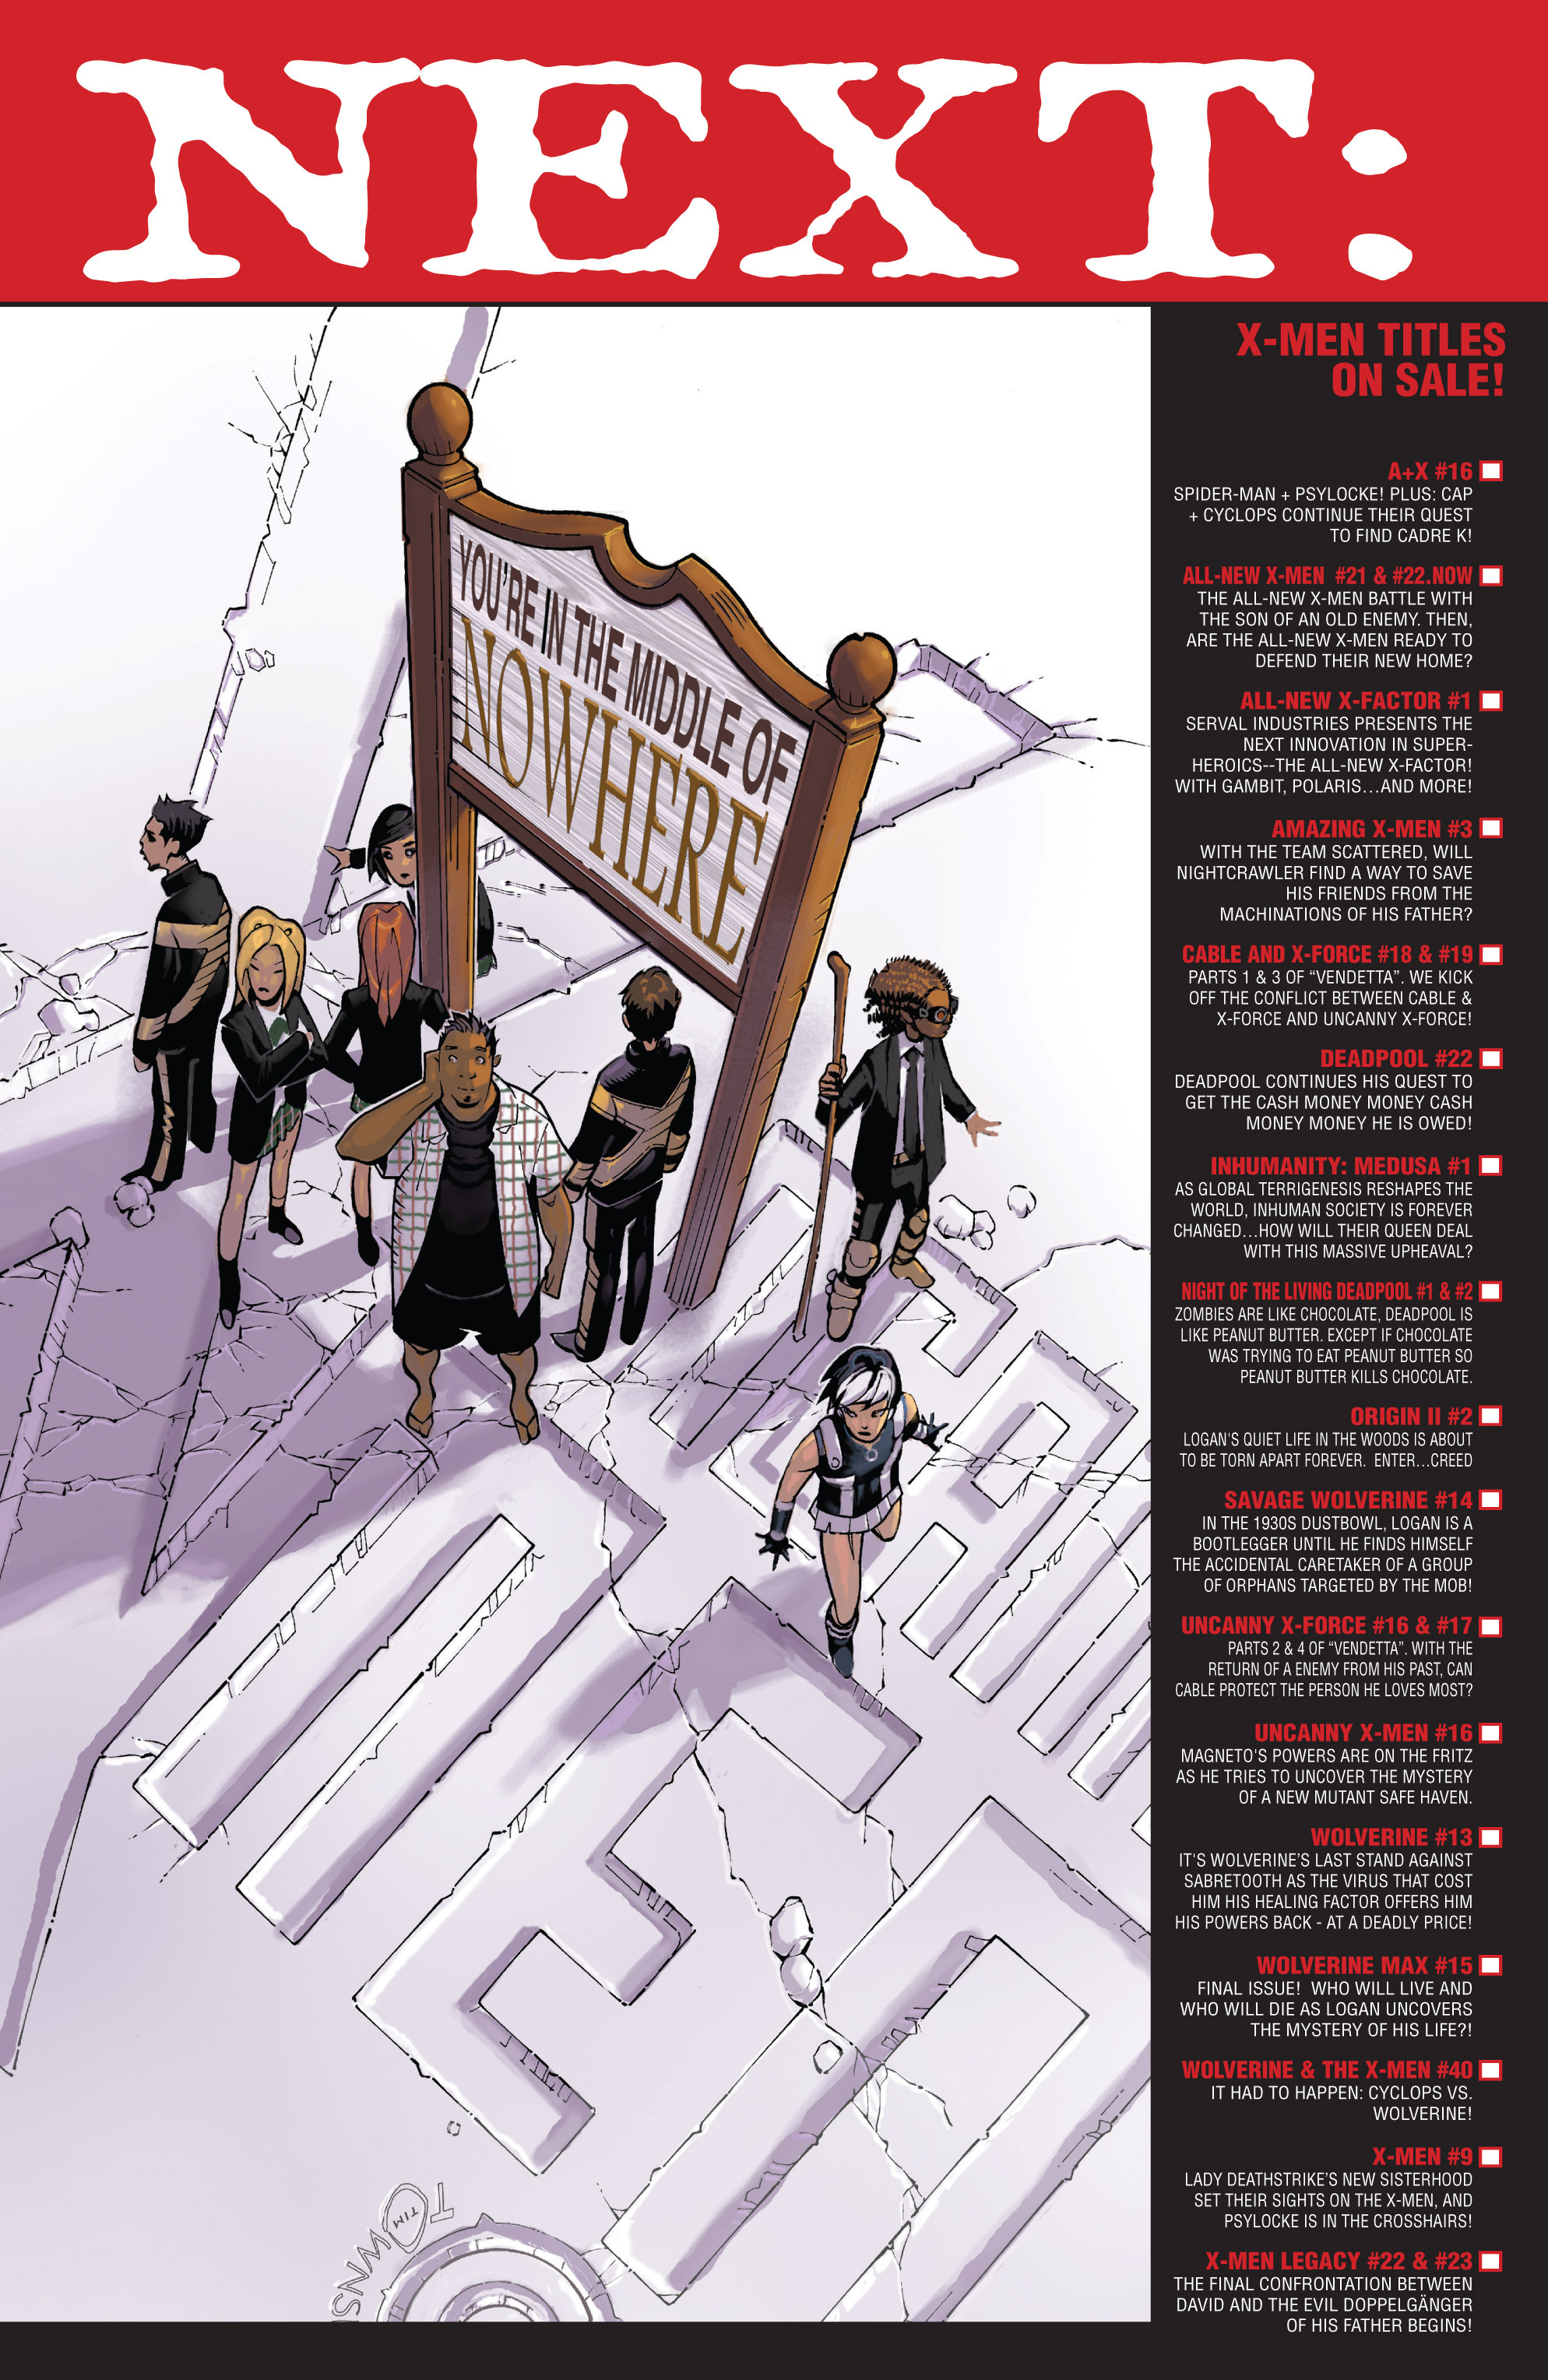 Read online Uncanny X-Men (2013) comic -  Issue # _TPB 3 - The Good, The Bad, The Inhuman - 64